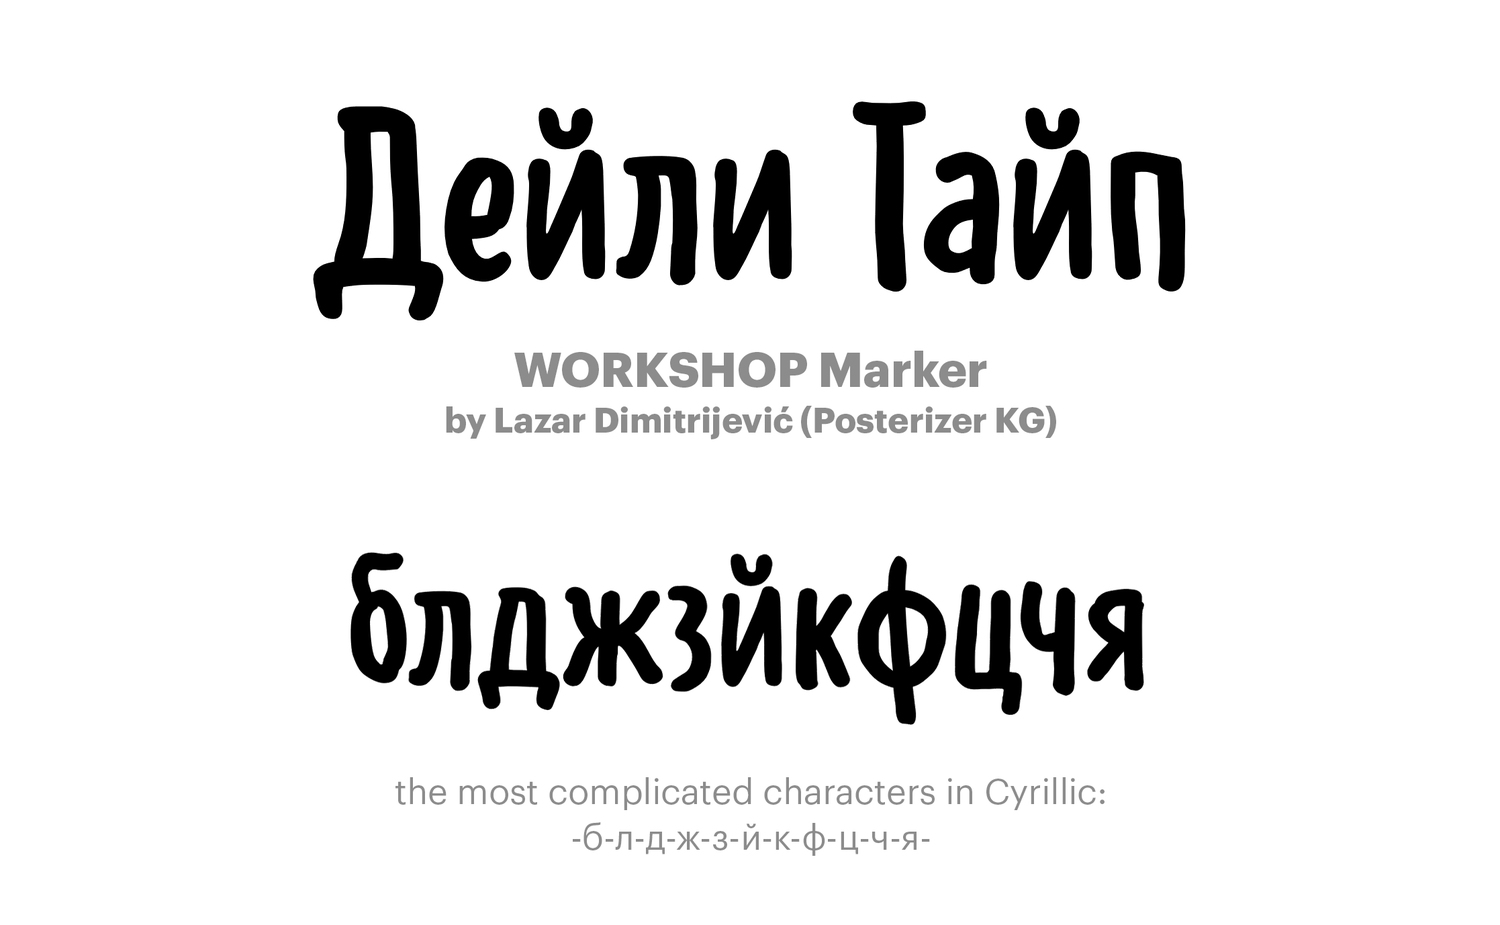 WORKSHOP-Marker-by-Lazar-Dimitrijević-(Posterizer-KG)